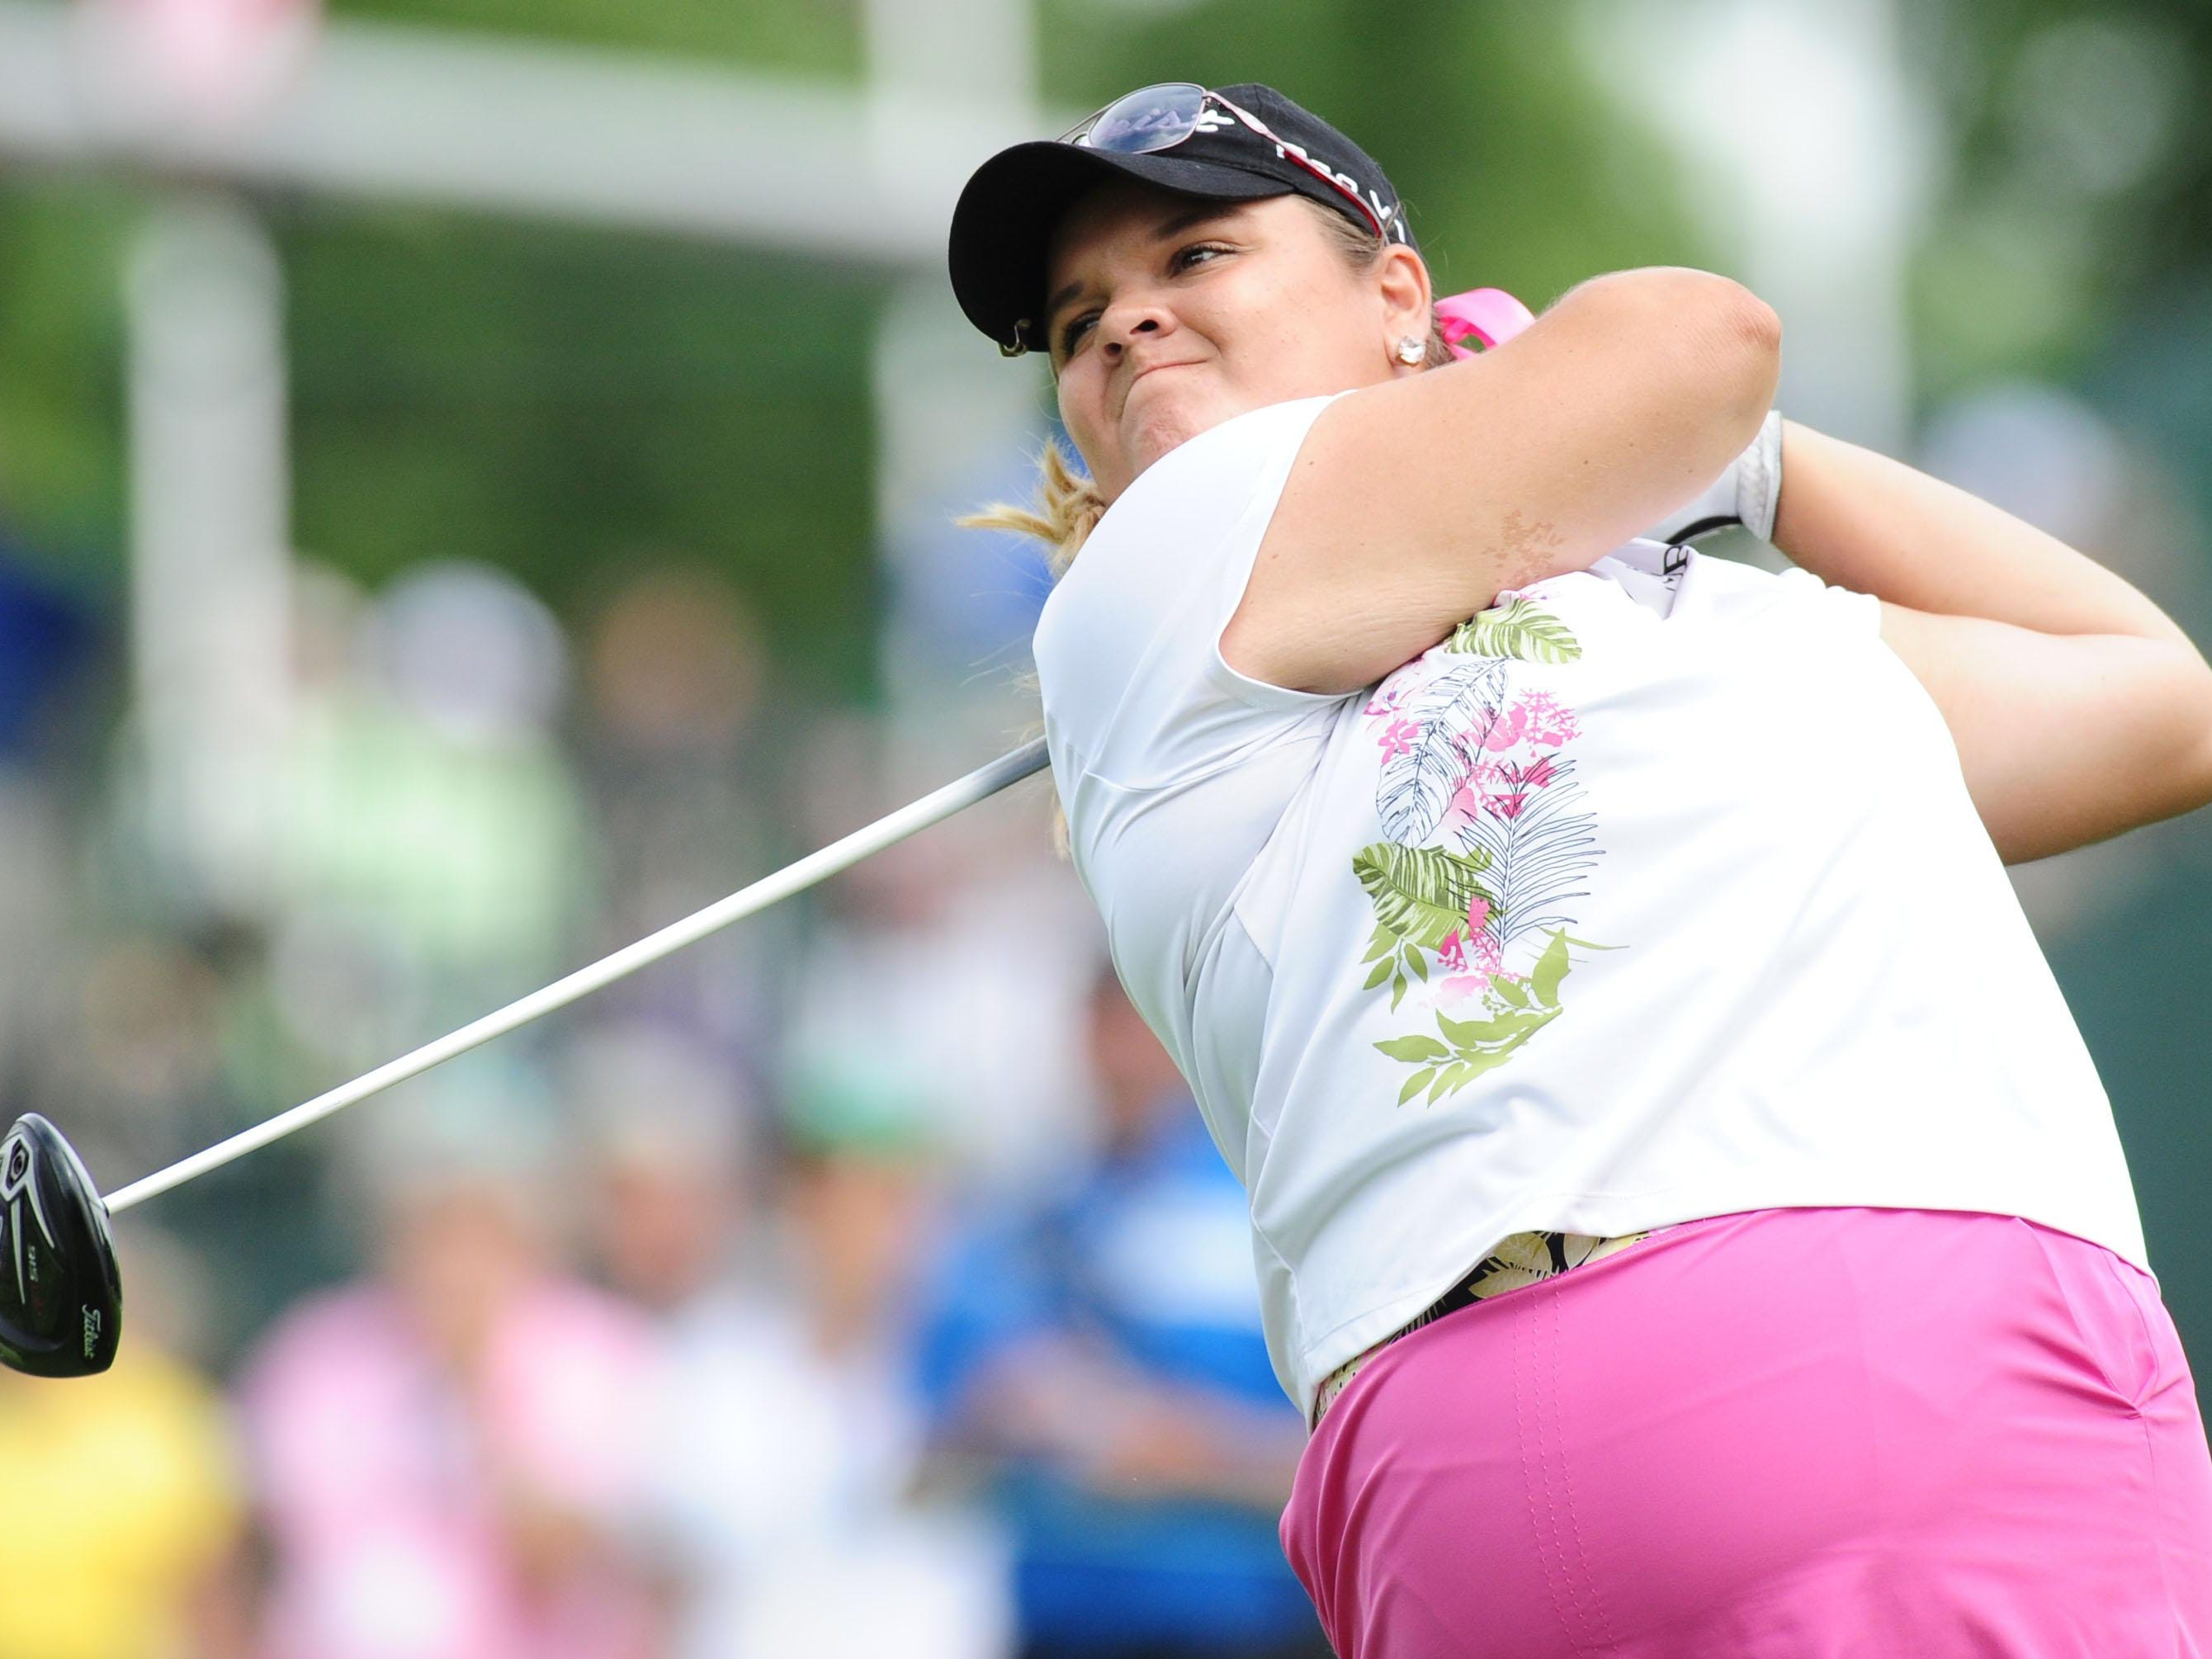 DeWitt's Liz Nagel tees off on the 14th hole during the first round of the U.S. Women's Open at Lancaster Country Club.